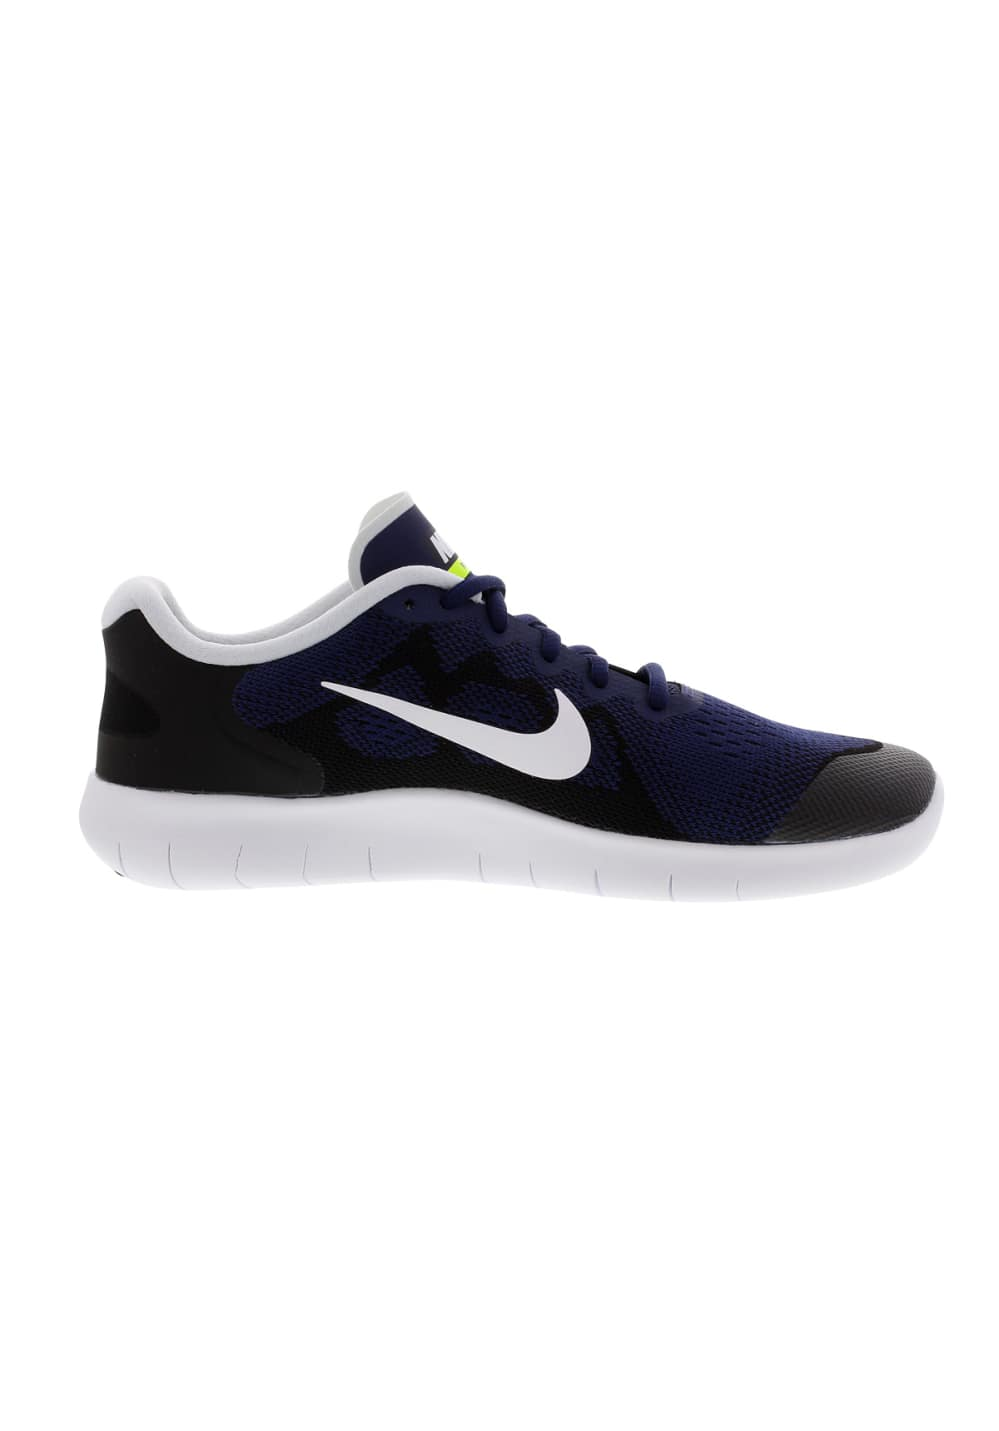 best service 87044 6c632 ... Nike Free RN 2017 GS - Running shoes - Blue. Back to Overview. 1; 2; 3;  4; 5. Previous. Next